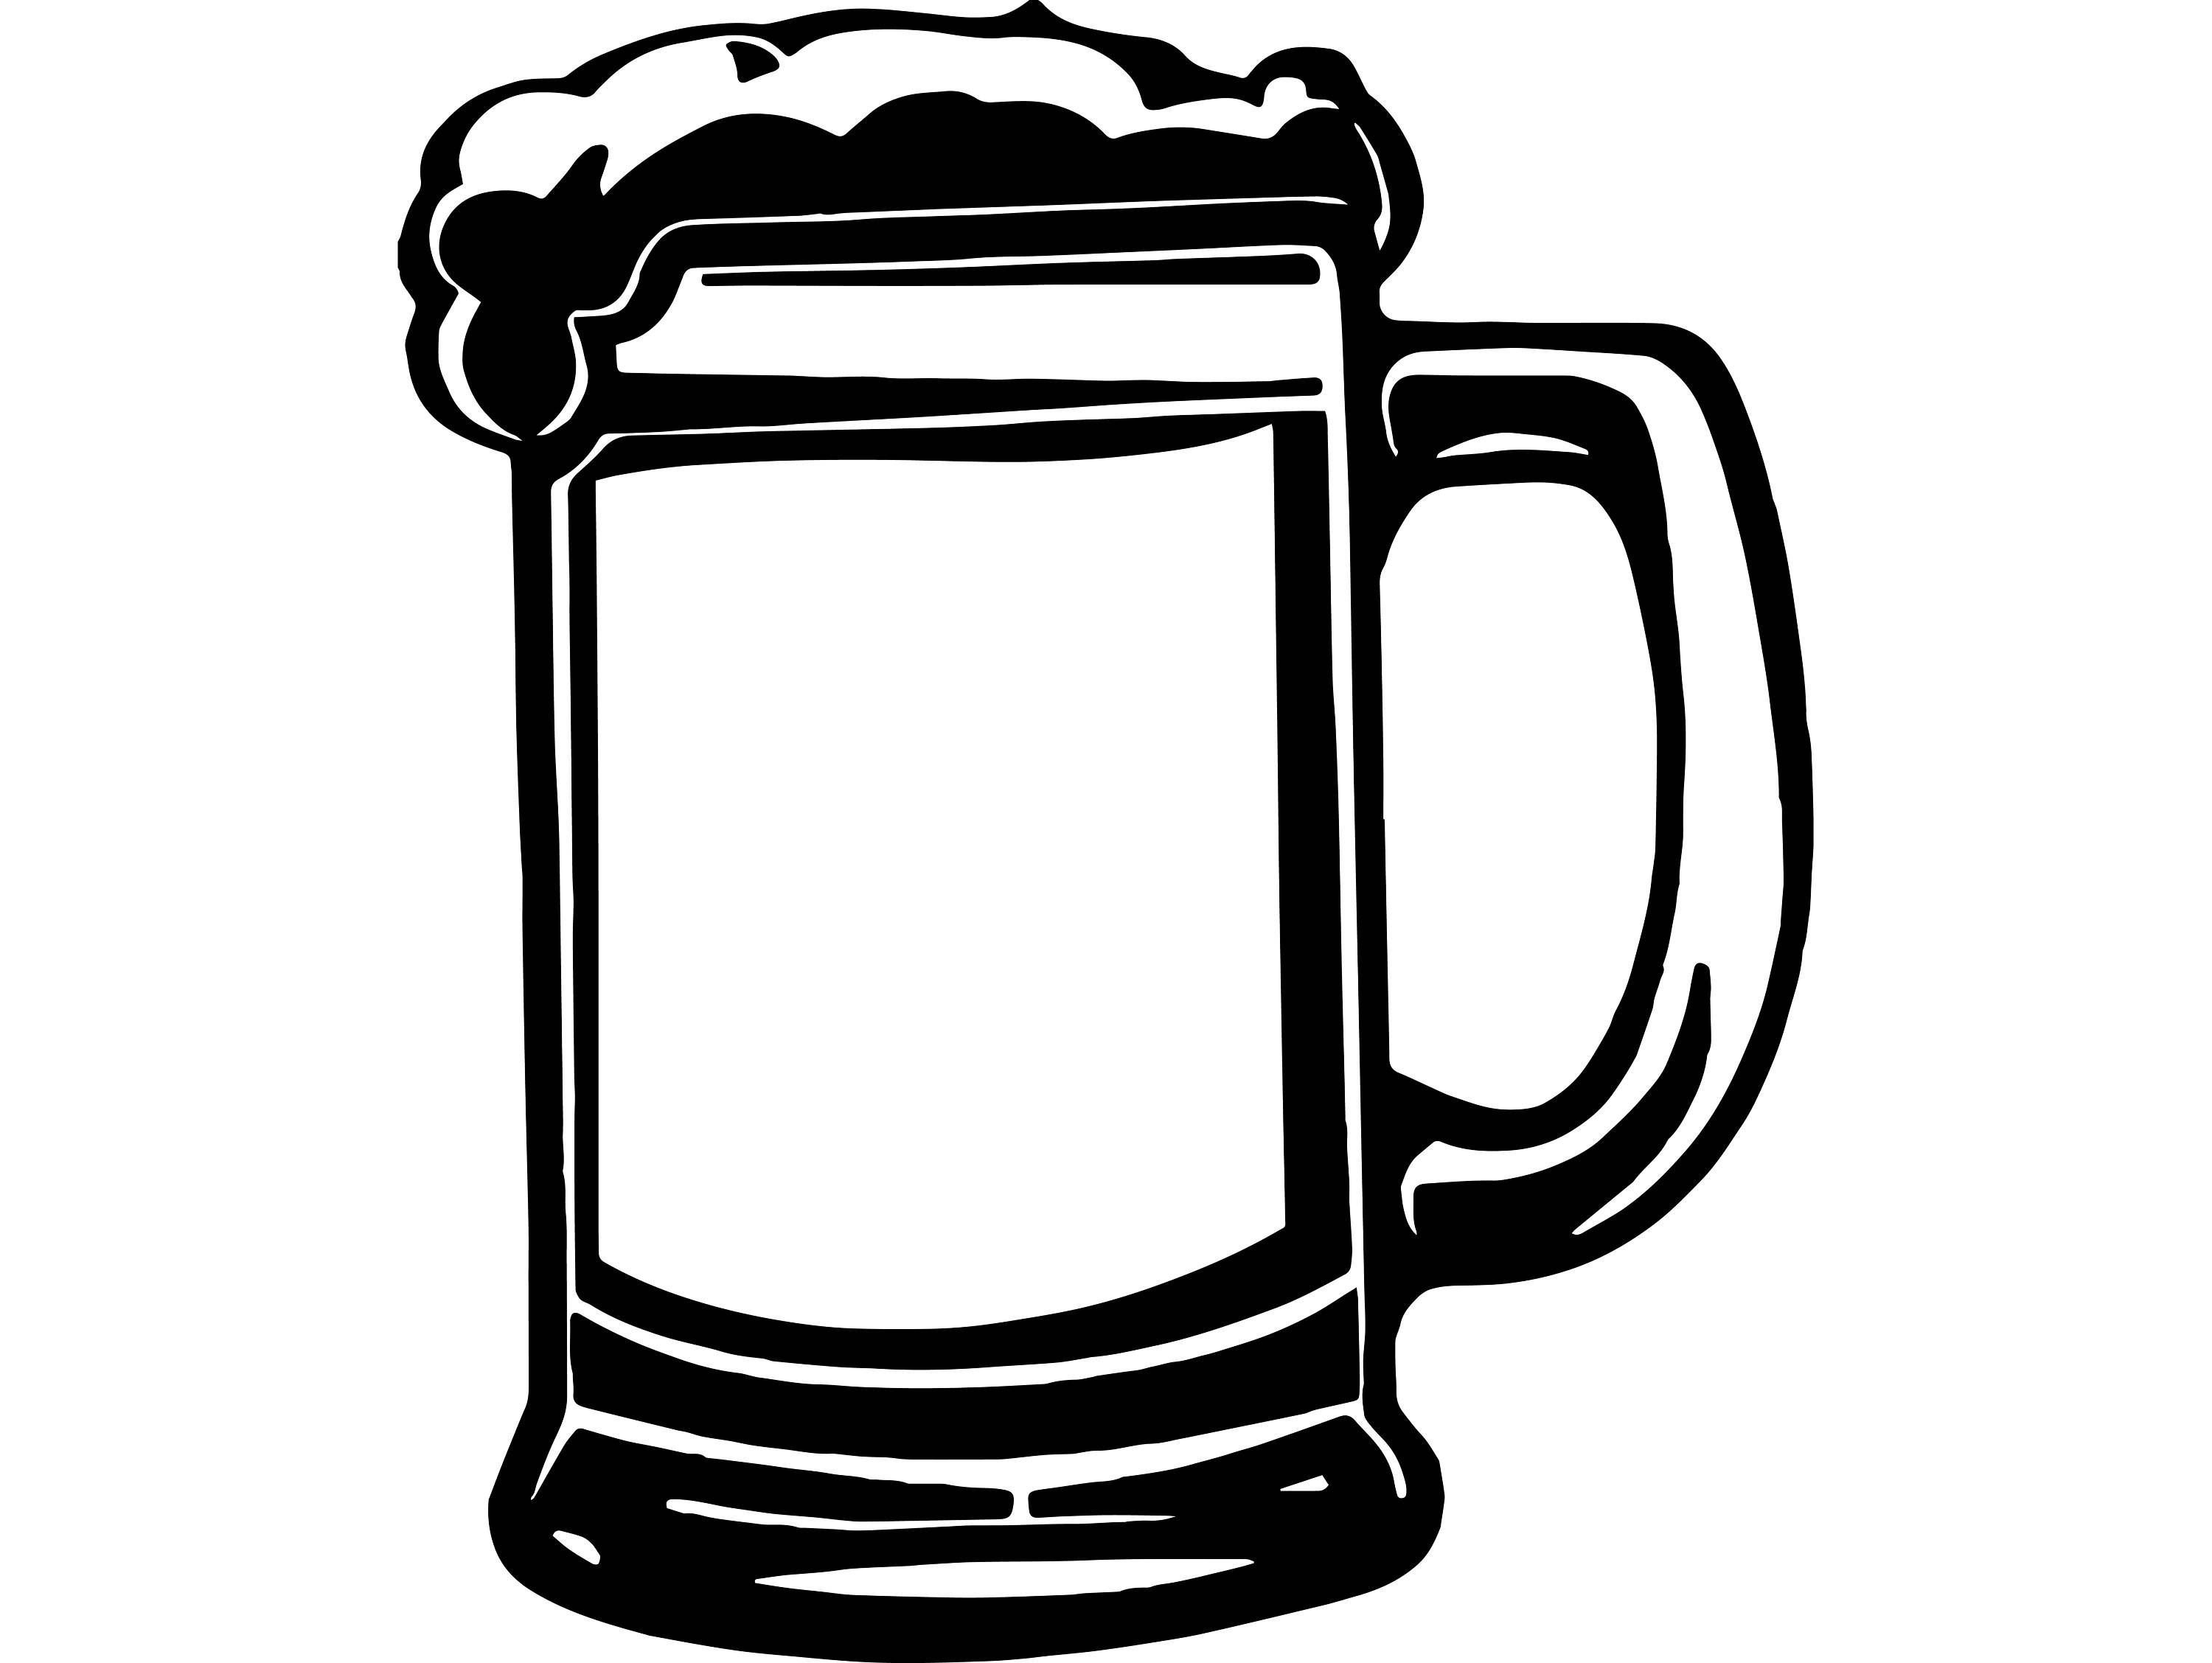 1114af961 Image result for beer mug svg | beer | Beer, Mugs, Silhouette cameo